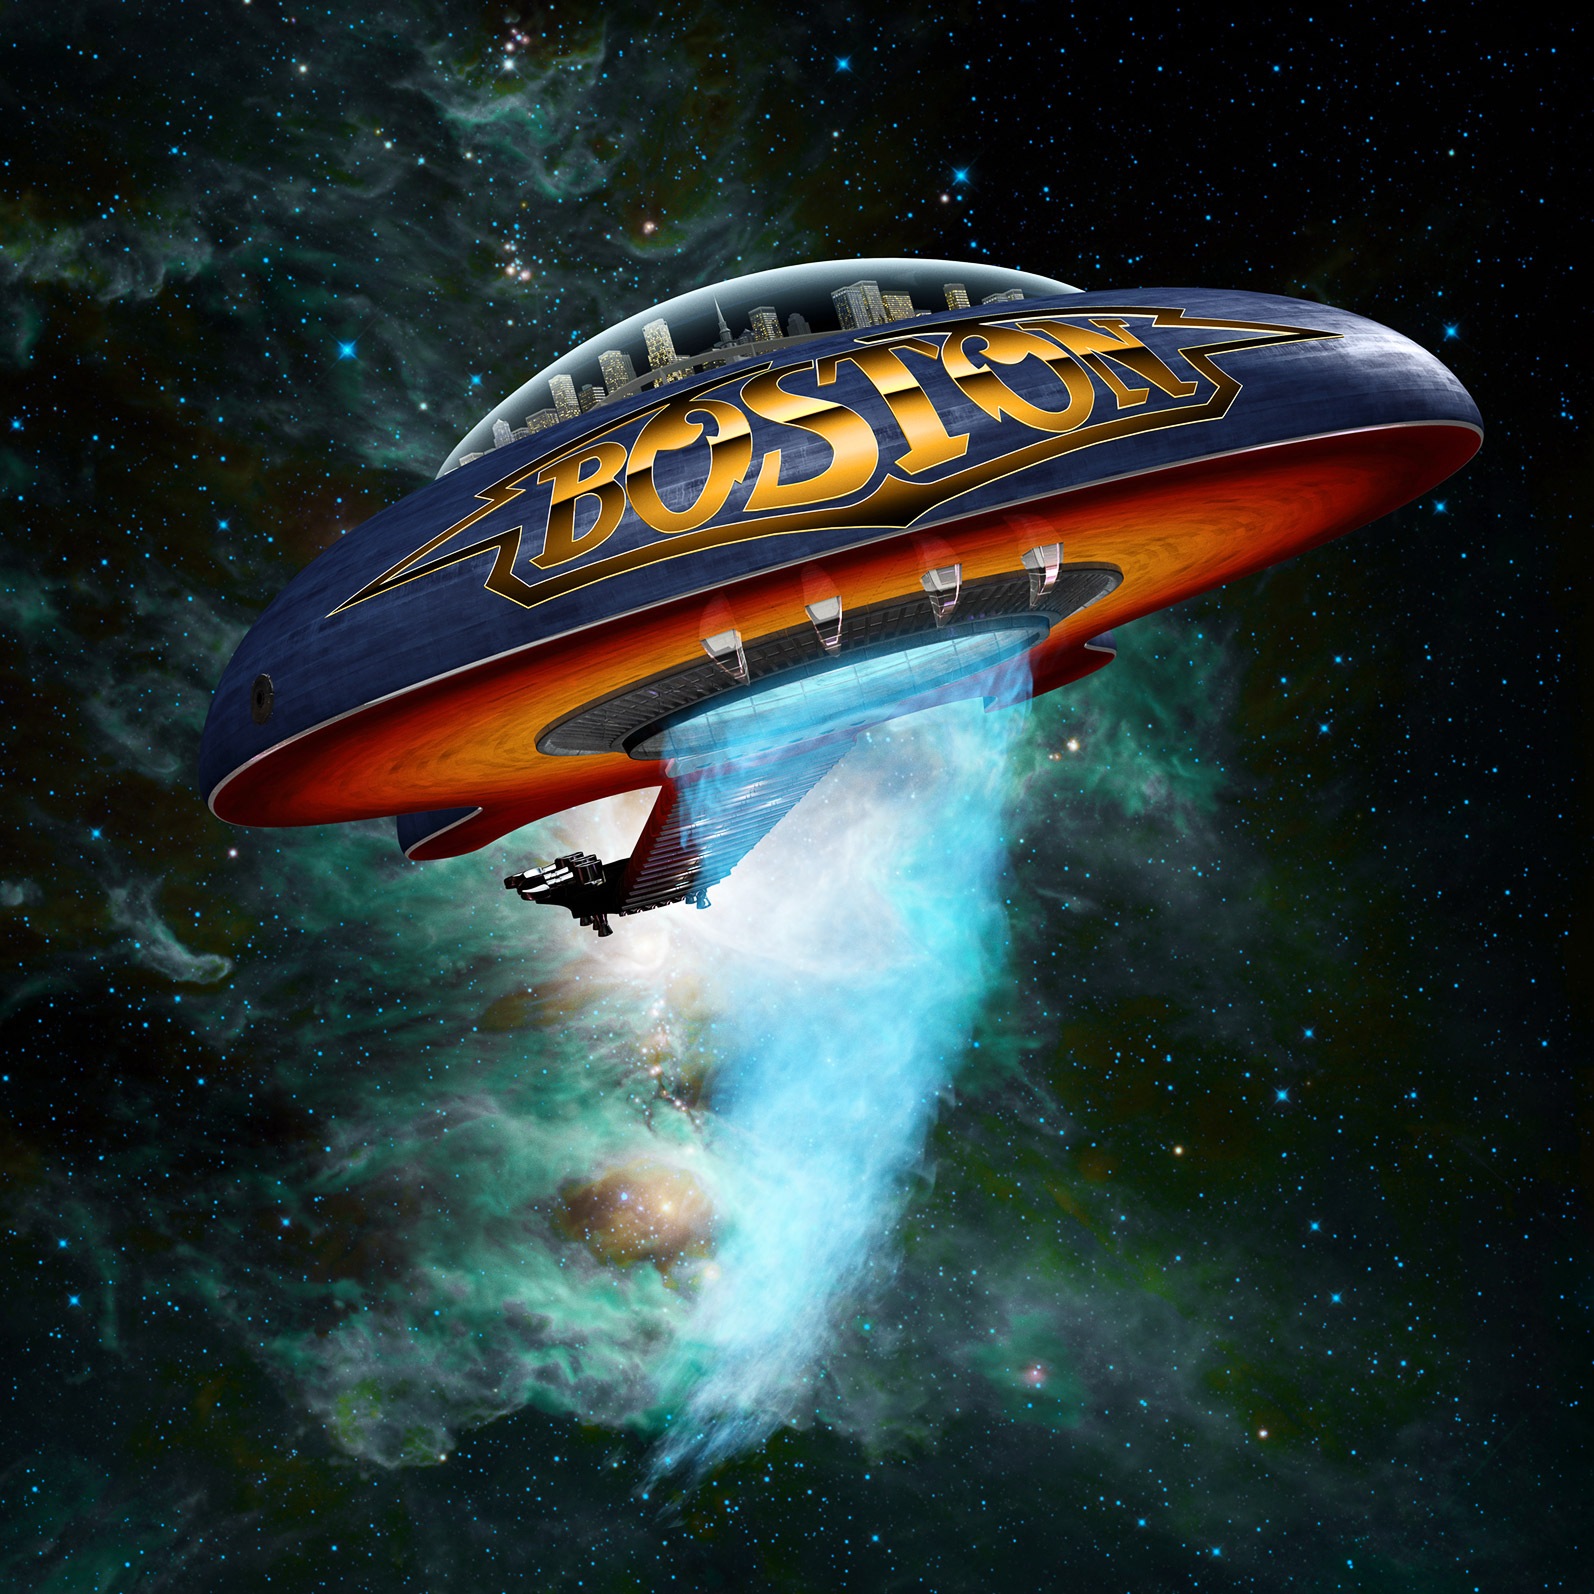 Boston guitar spaceship 2013 CGI  update